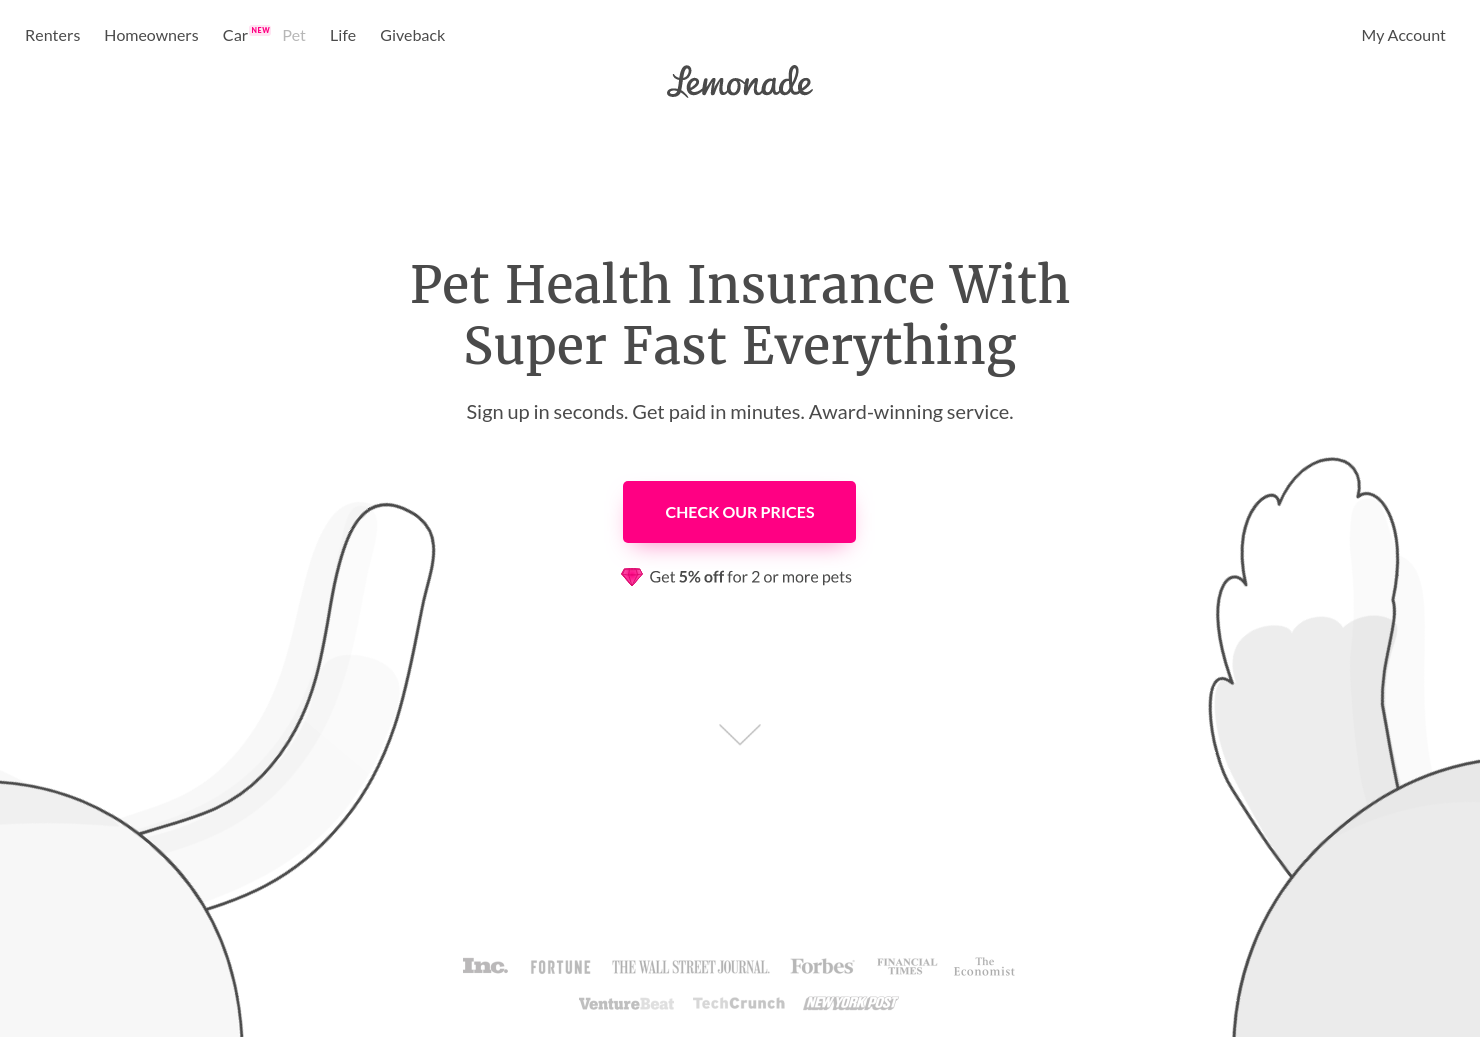 Lemonade Pet Health Insurance